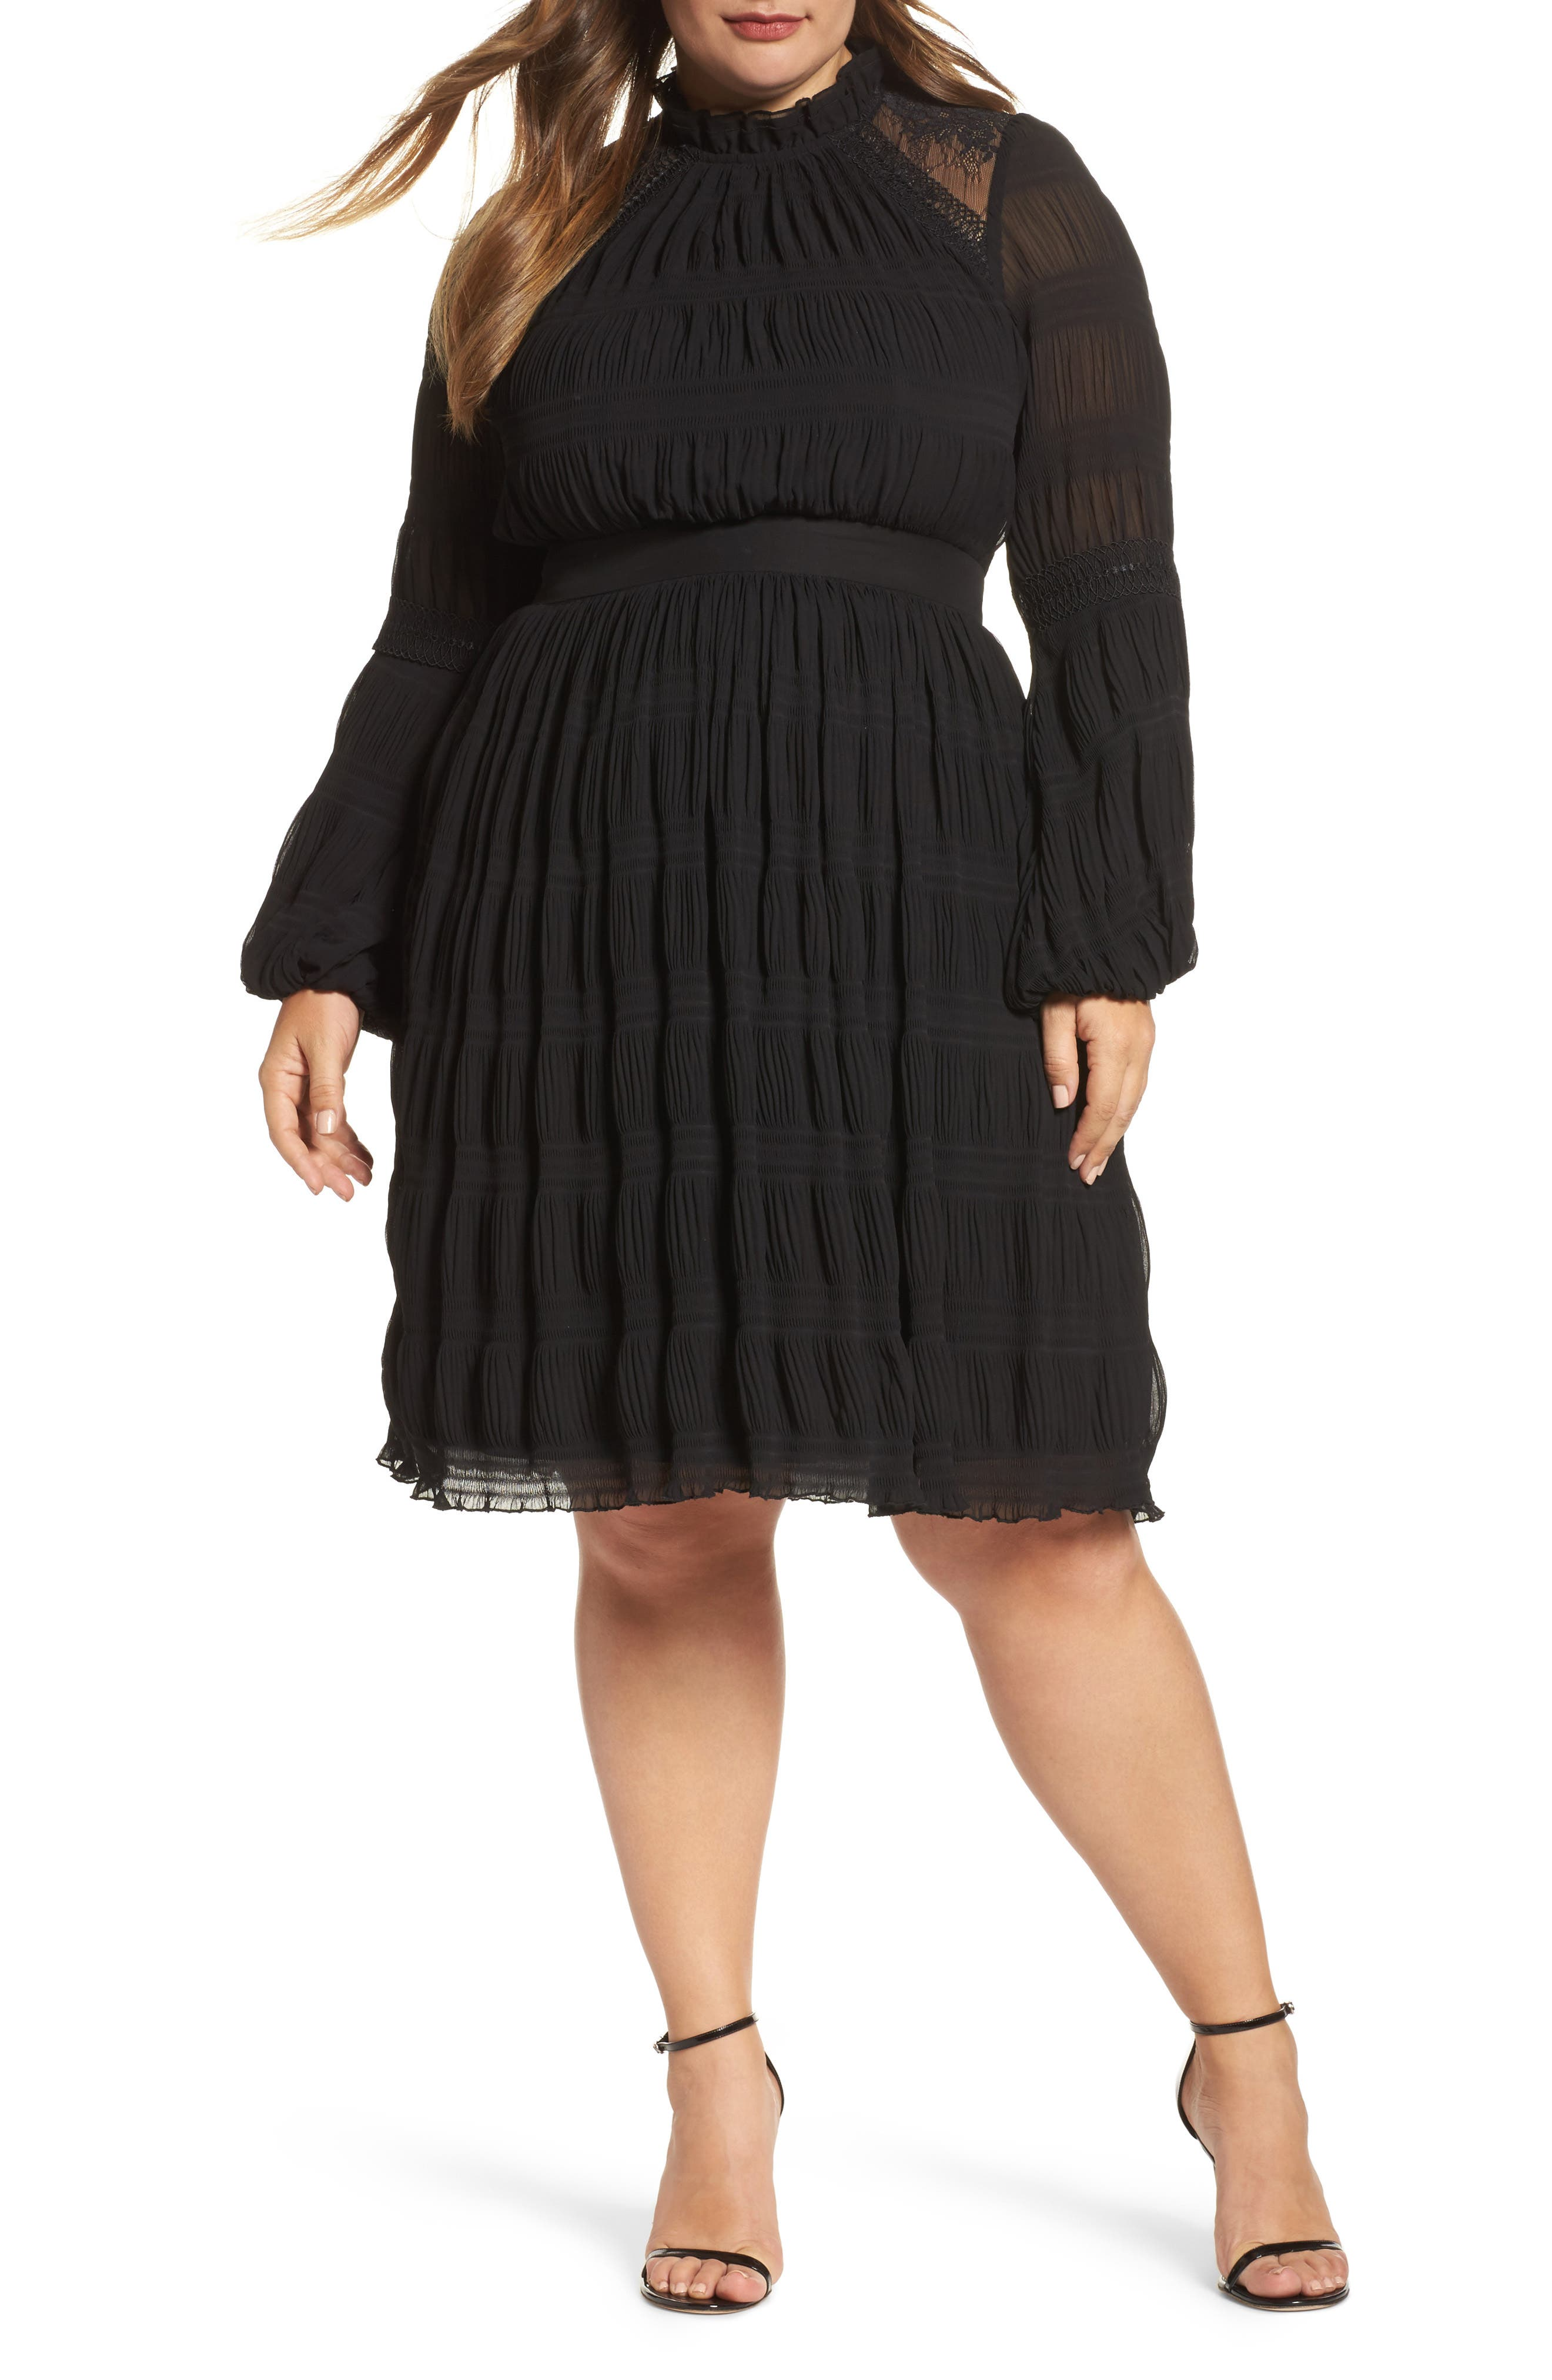 Main Image - LOST INK Lace Back Skater Dress (Plus Size)